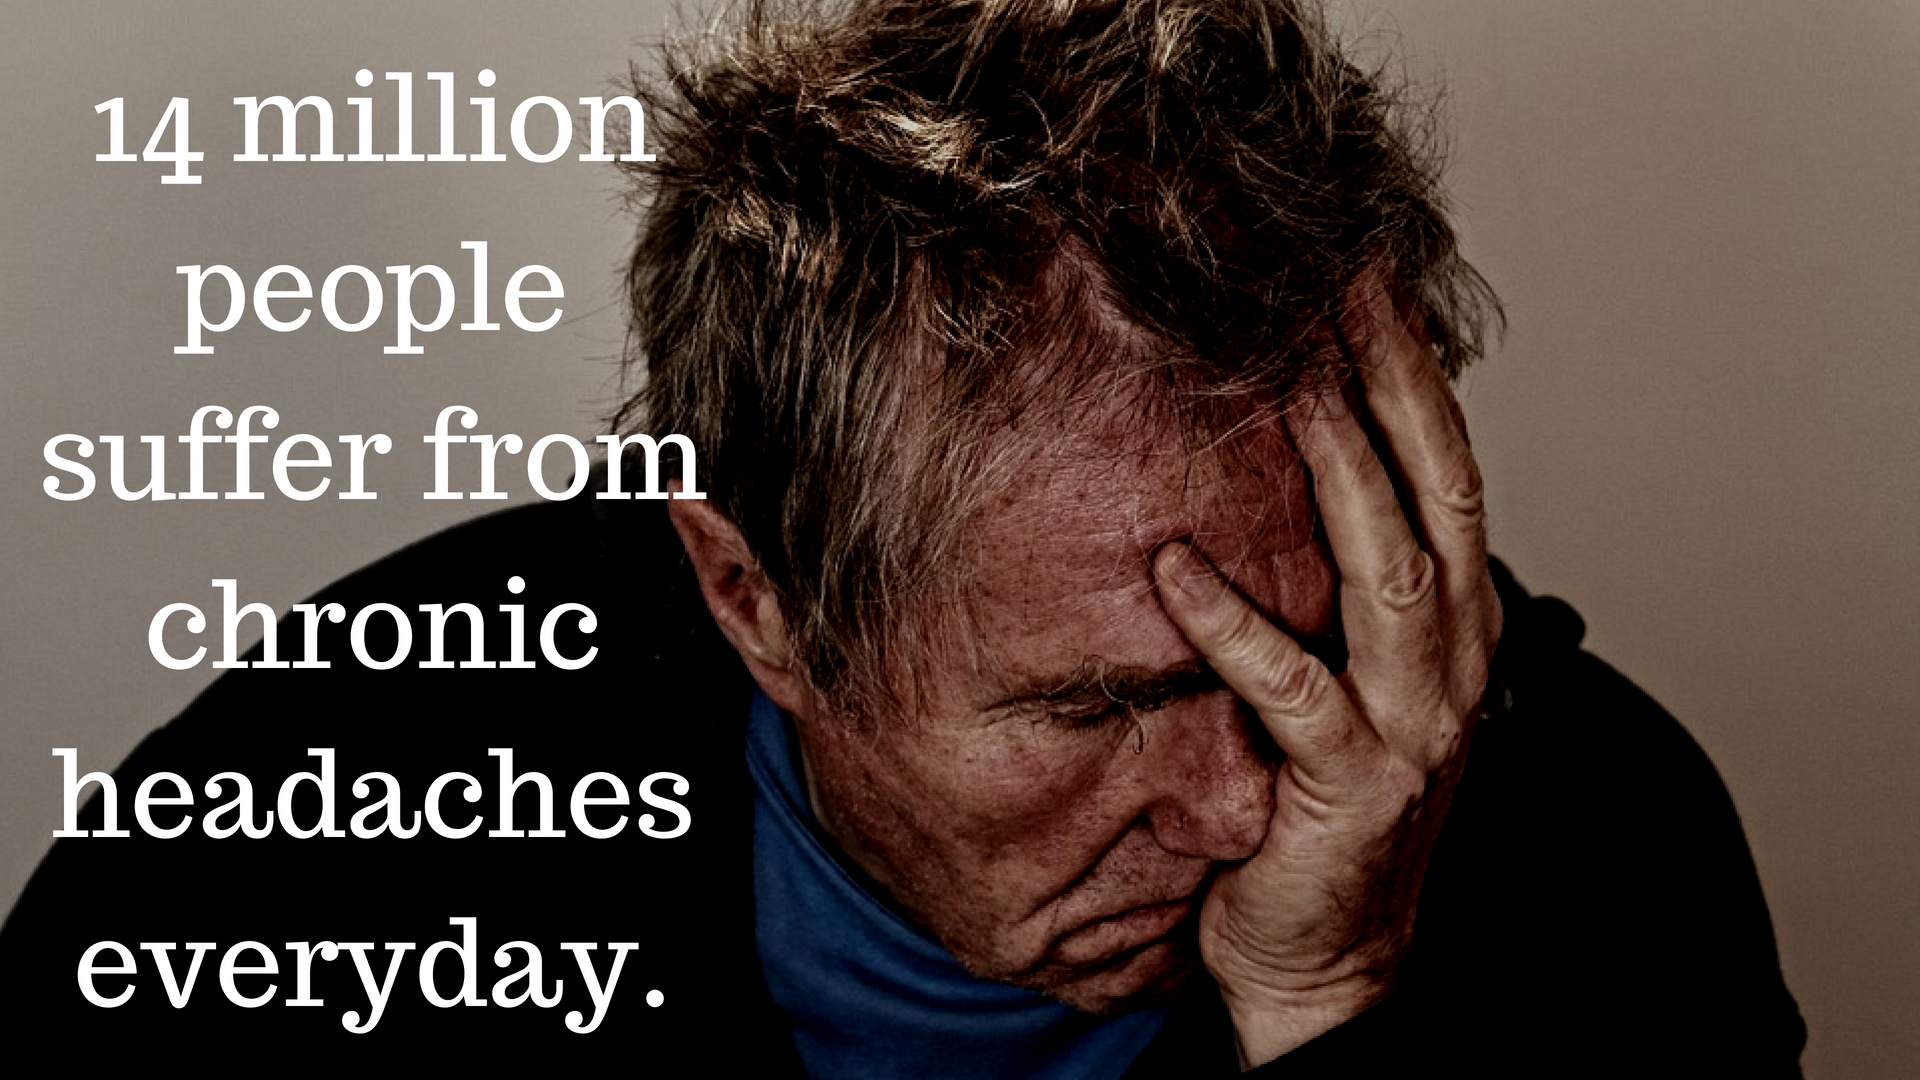 headaches are too common worldwide